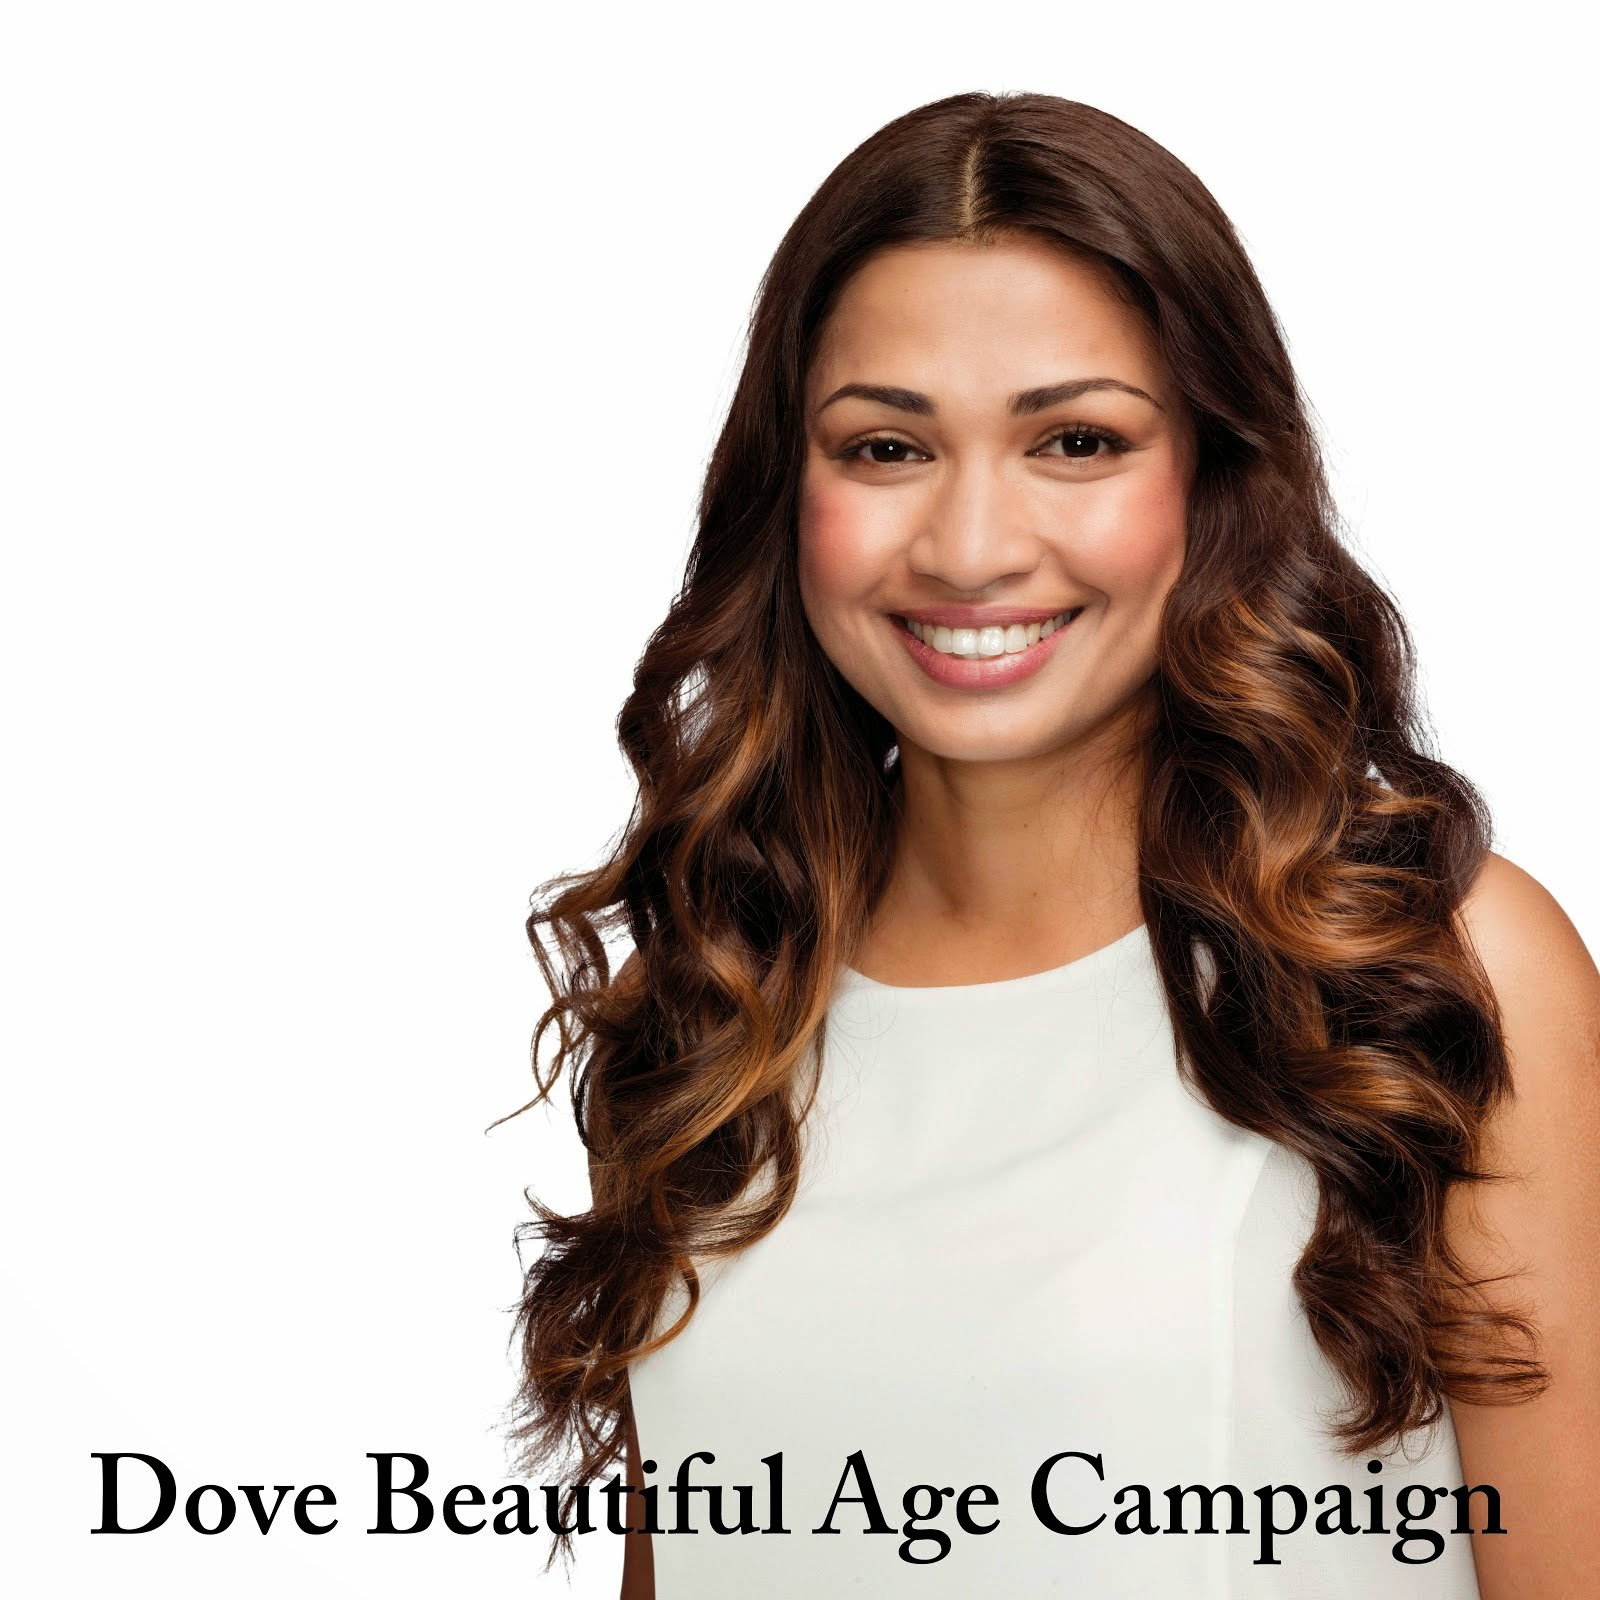 Dove Beautiful Age